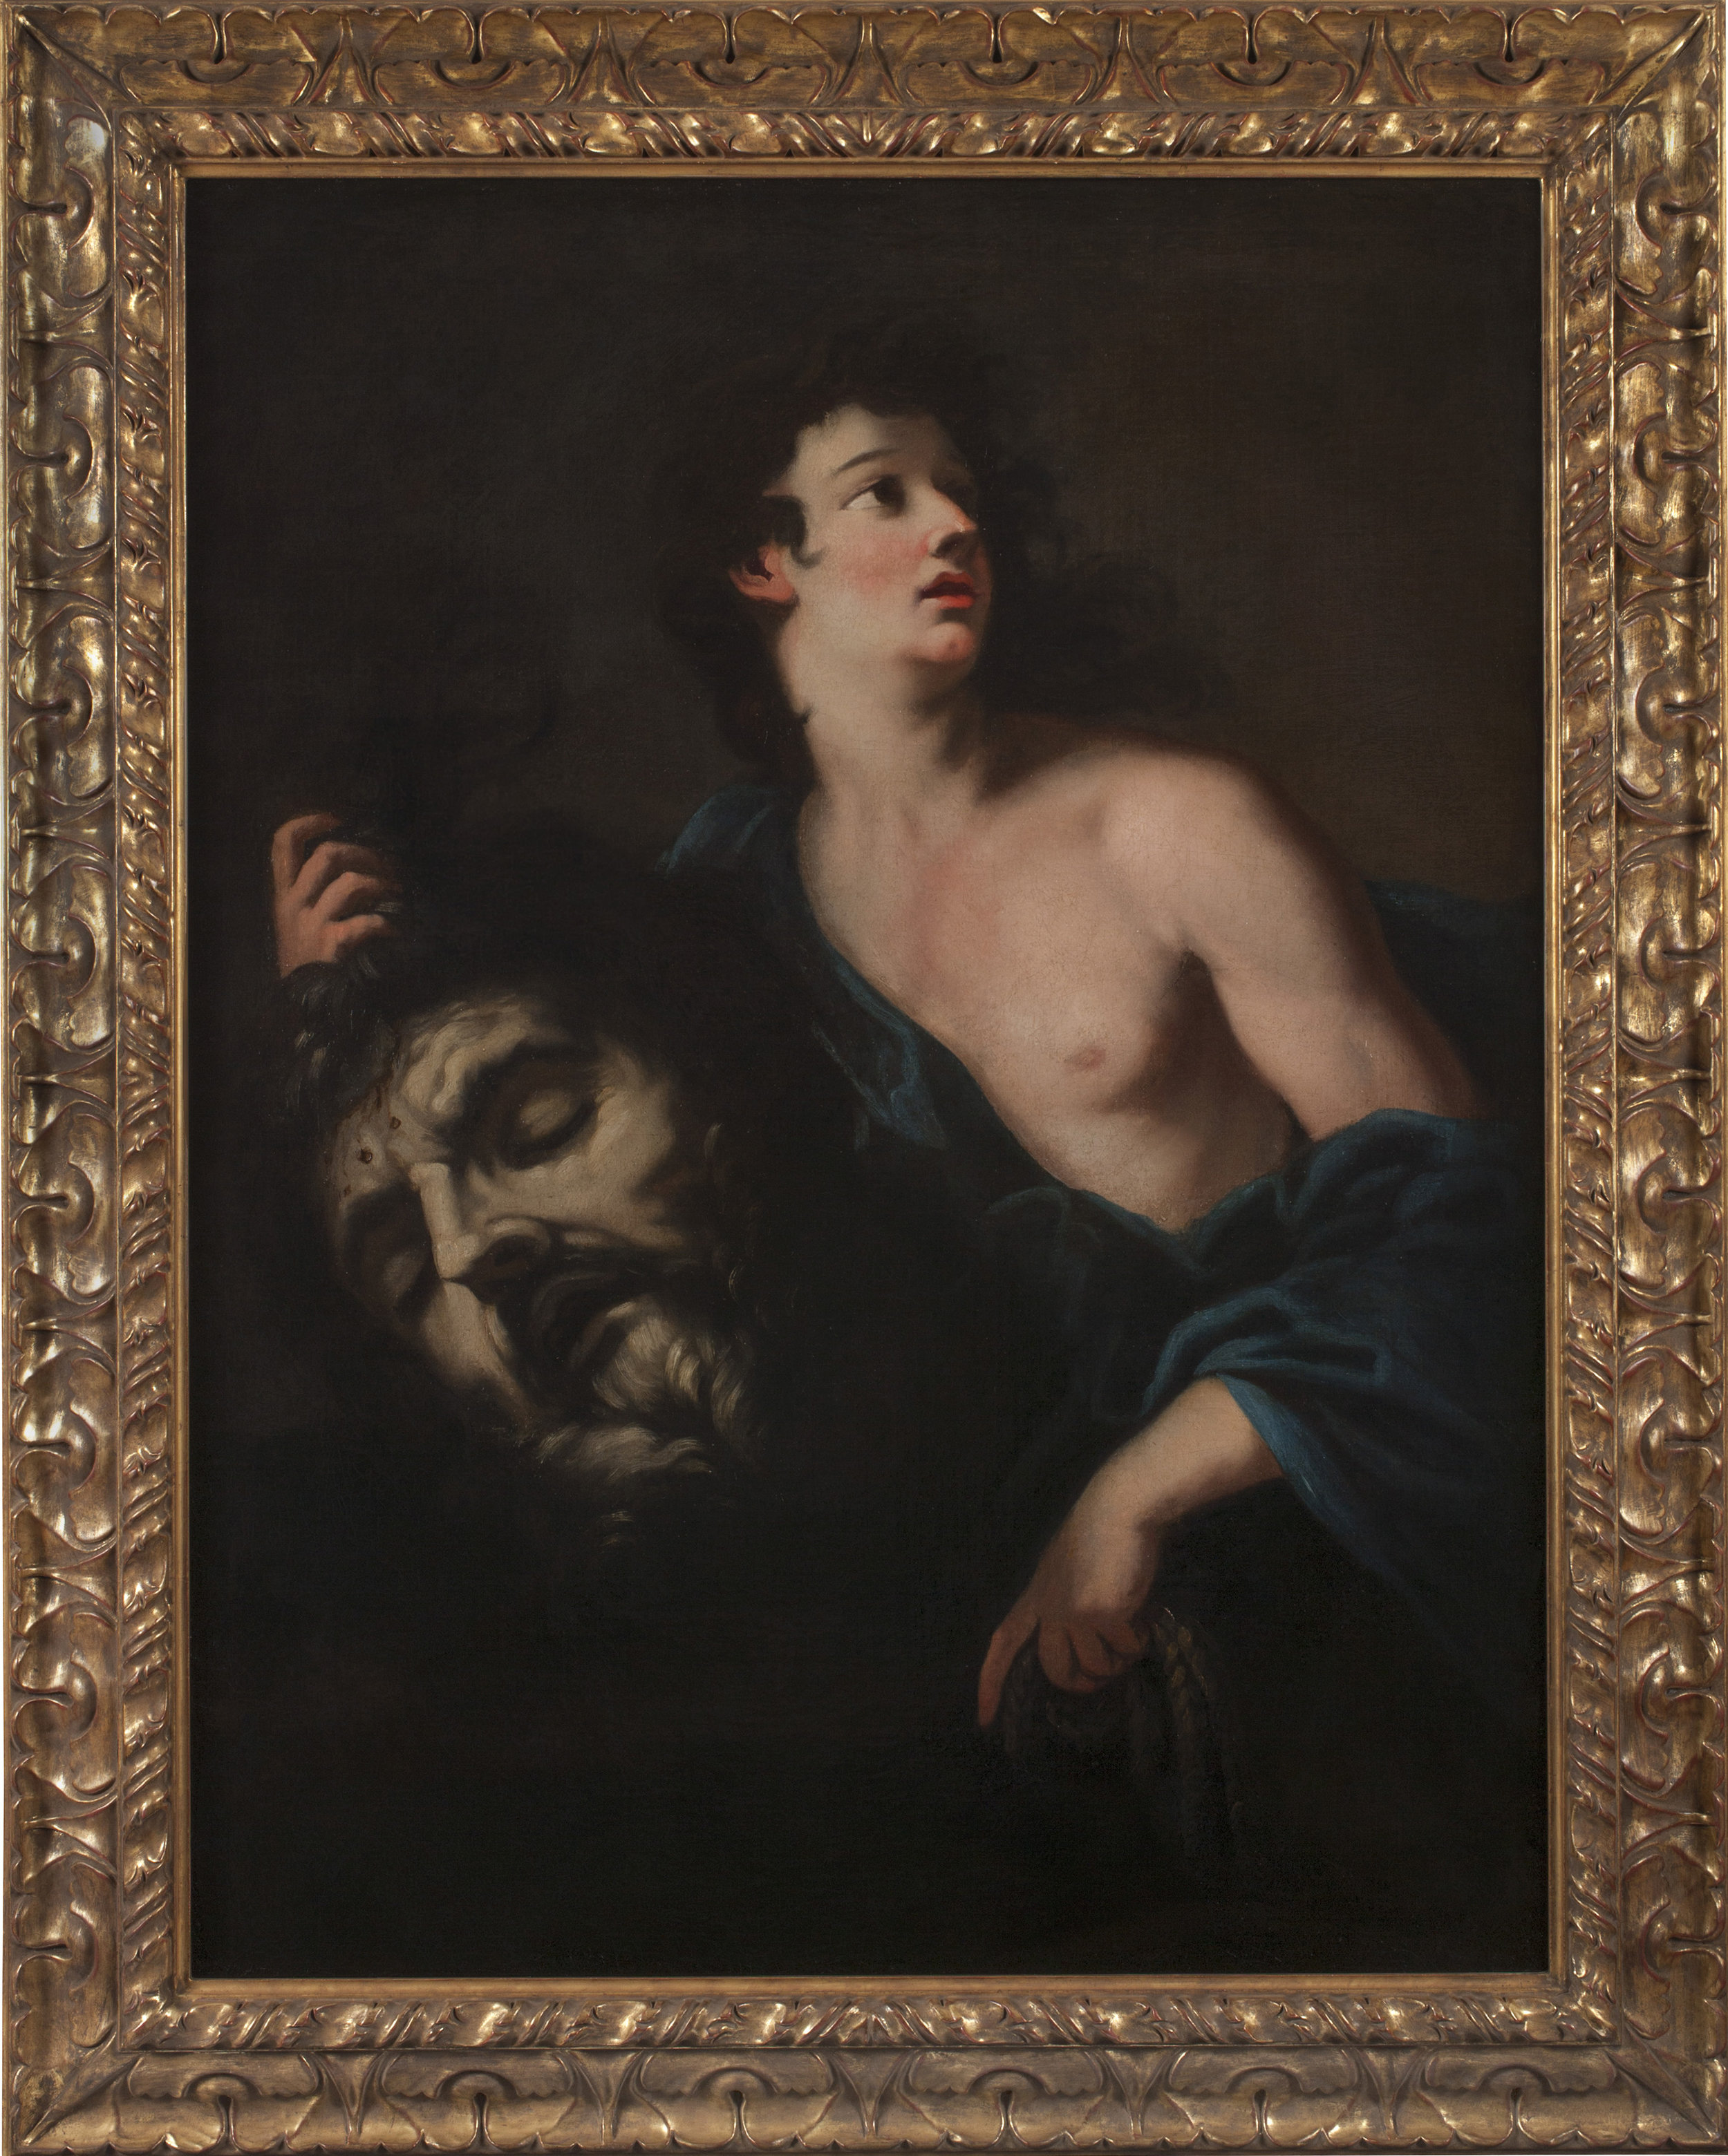 PIER (PIETRO) DANDINI   (Florence, 1646–1712)     David with the Head of Goliath   Oil on canvas    50 x 37 inches  (128.3 x 96 cm)